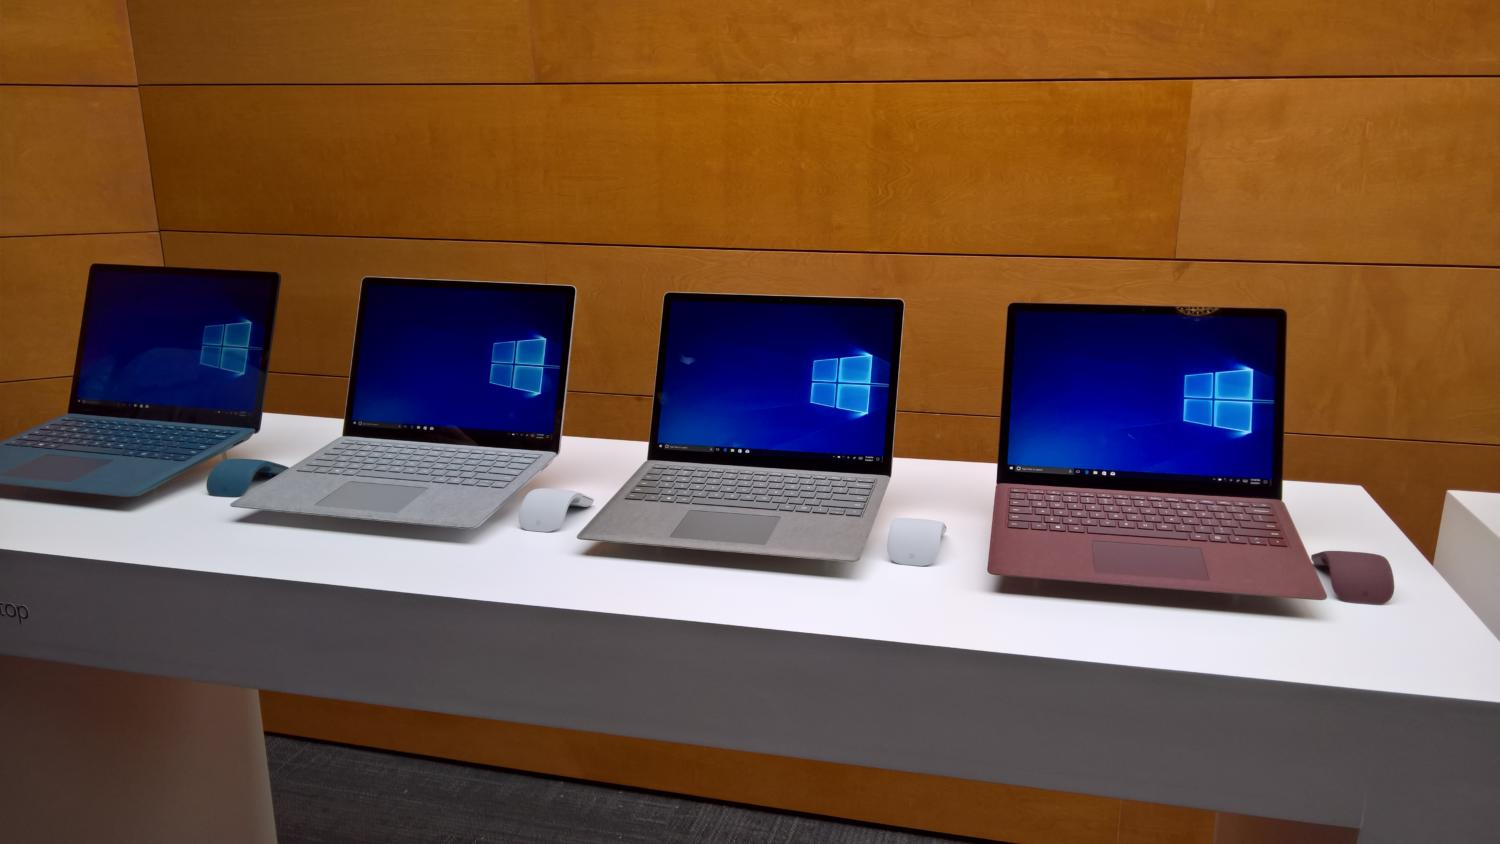 Windows 10 S, the Future of Educational Computing